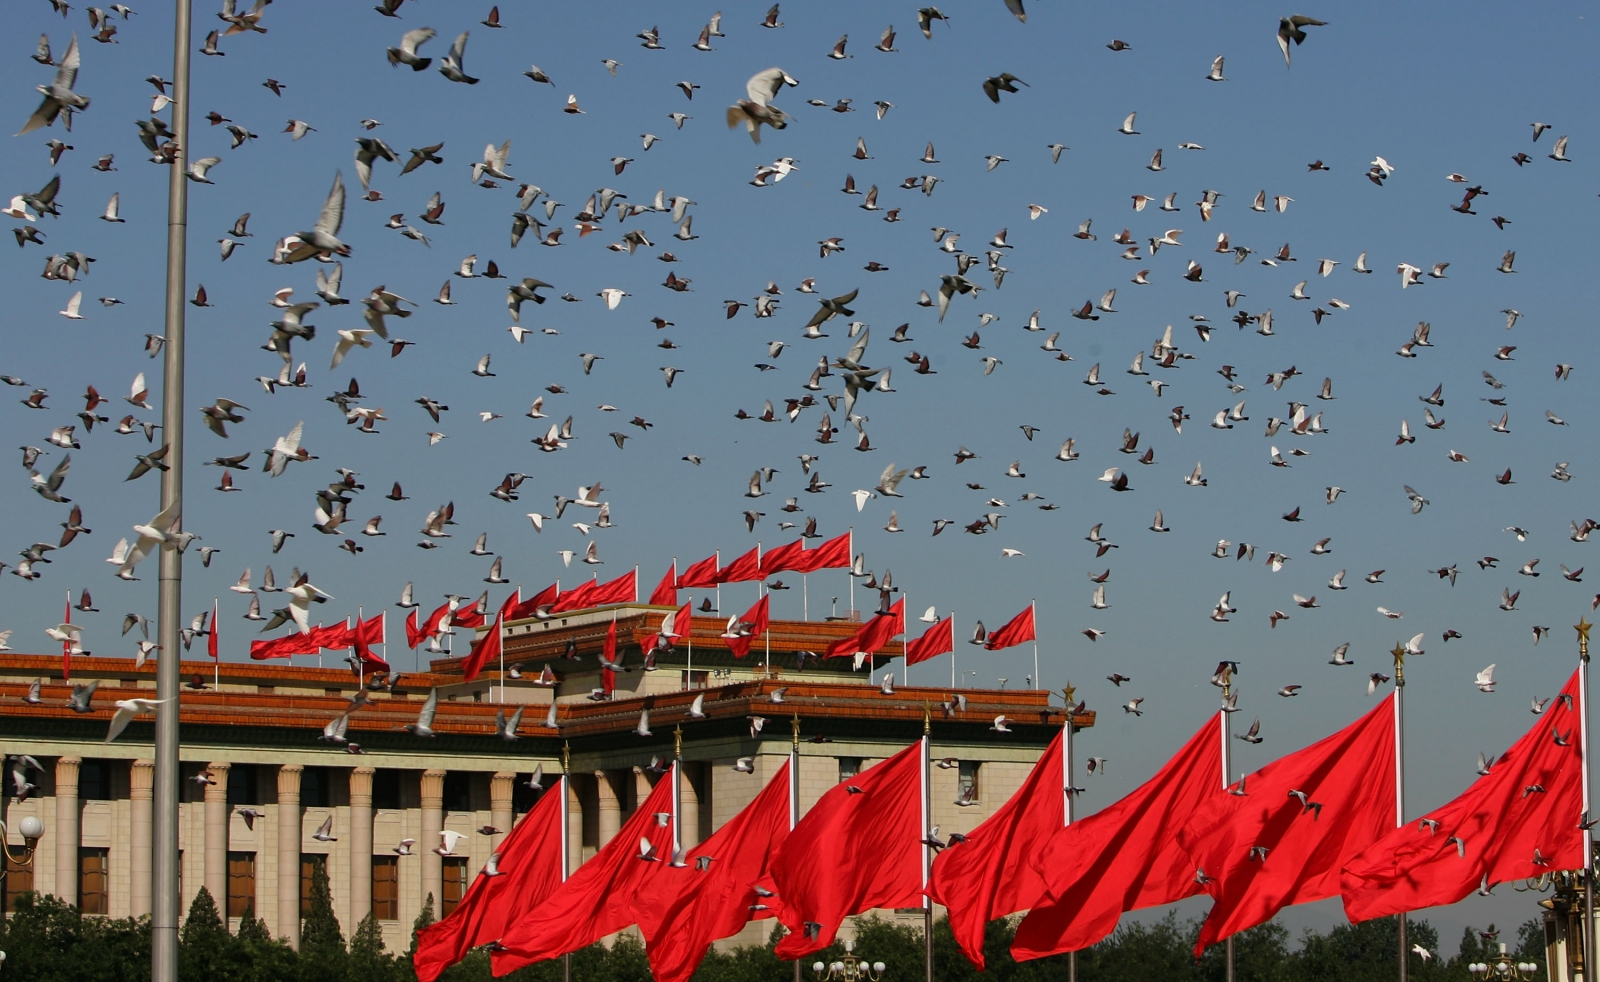 Tiananmen Square Doves Great Hall of the People